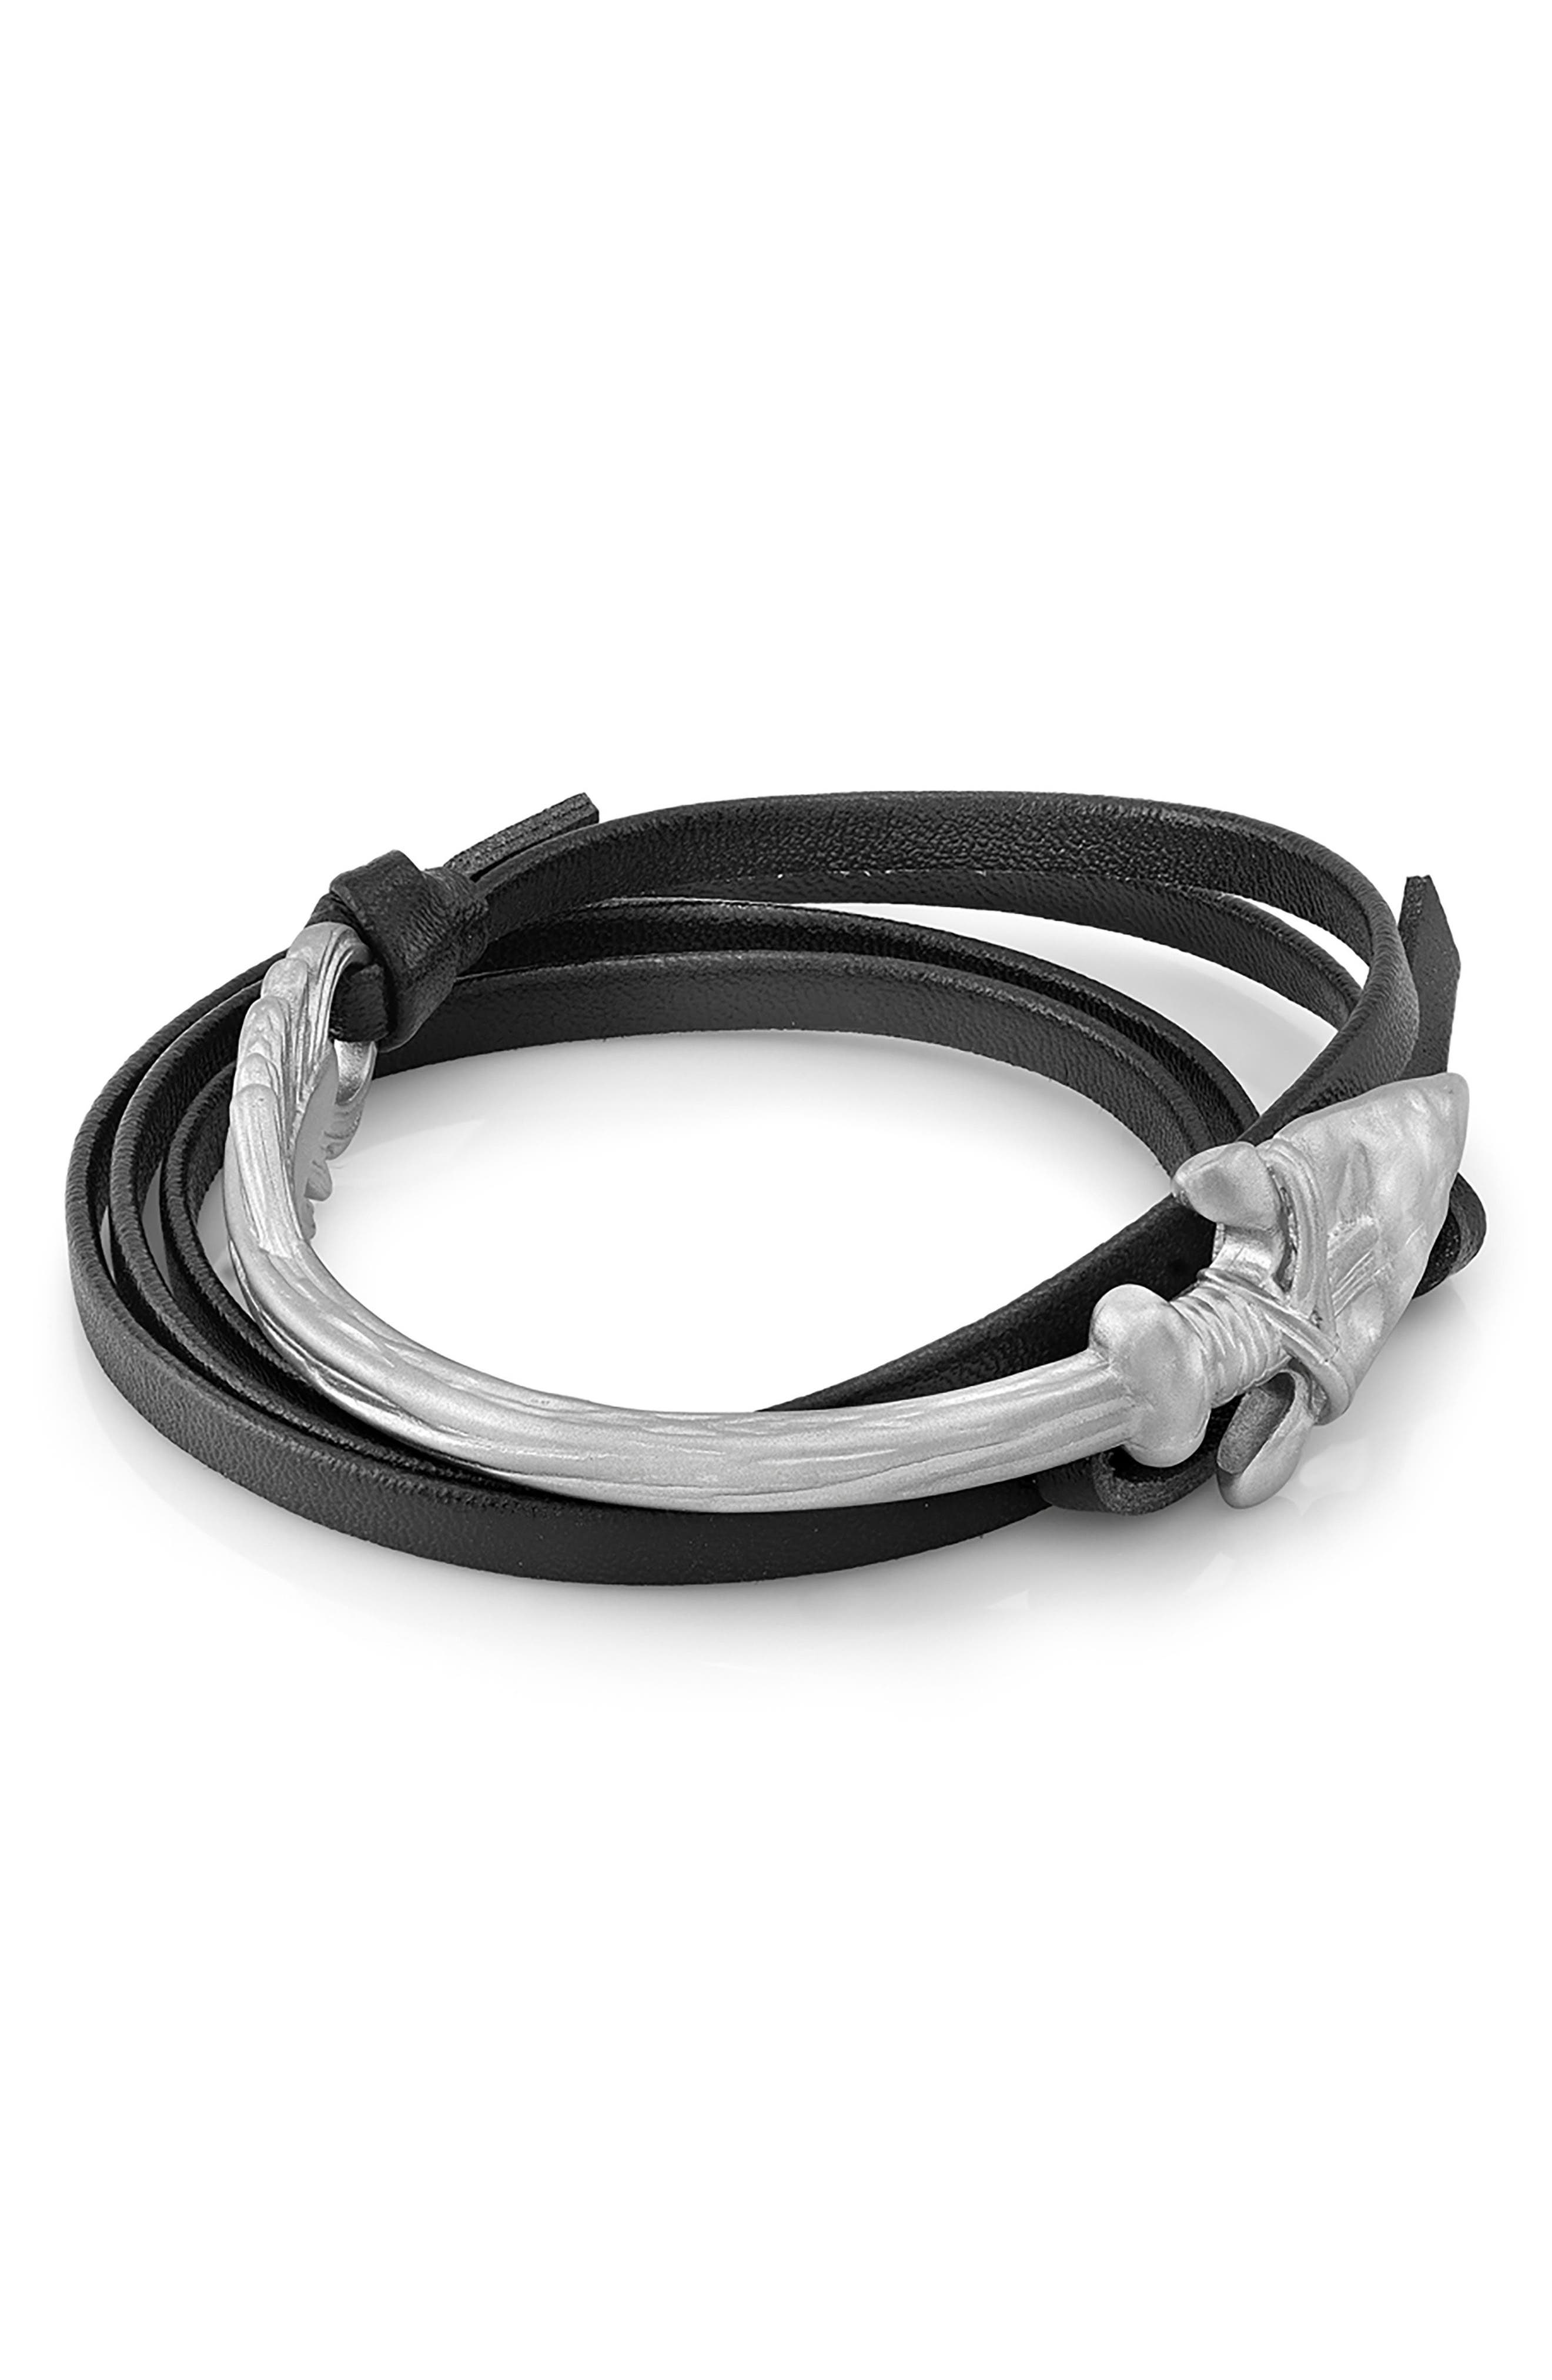 Arrow Leather Wrap Bracelet,                             Main thumbnail 1, color,                             Silver/ Black